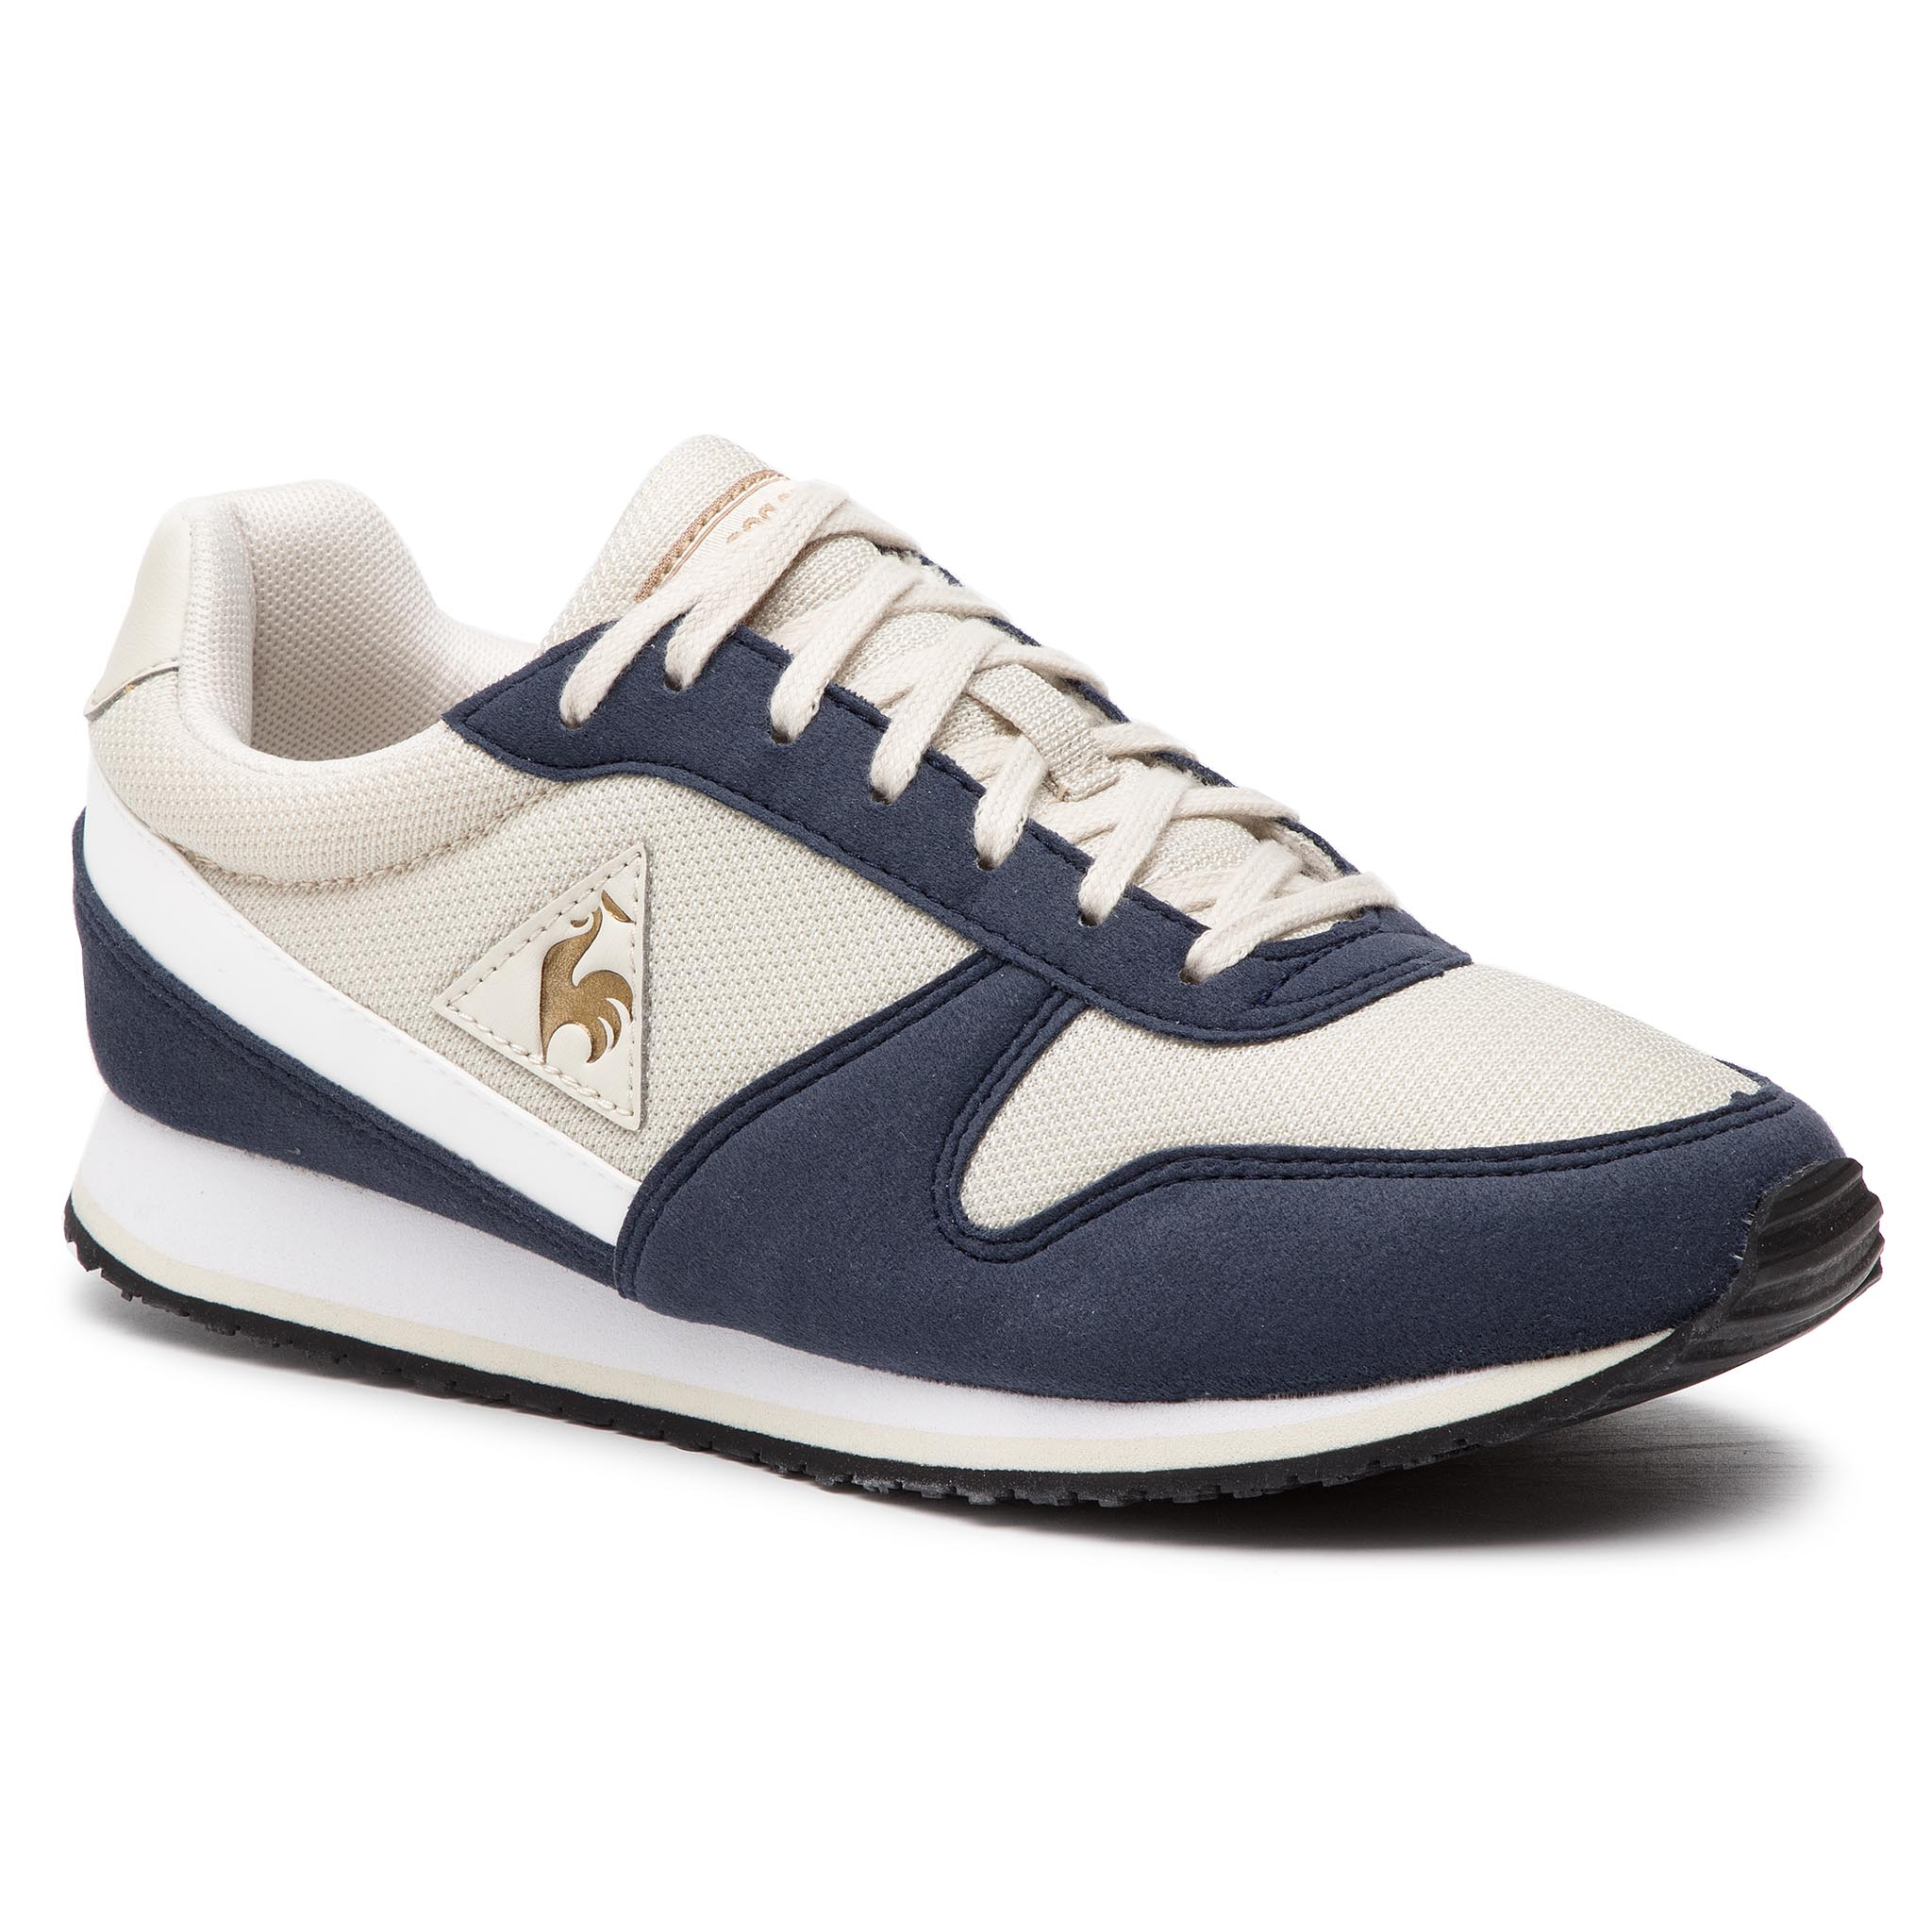 Sneakers LE COQ SPORTIF - Alpha II W Sport 1910526 Dress Blue/Turtle Dove